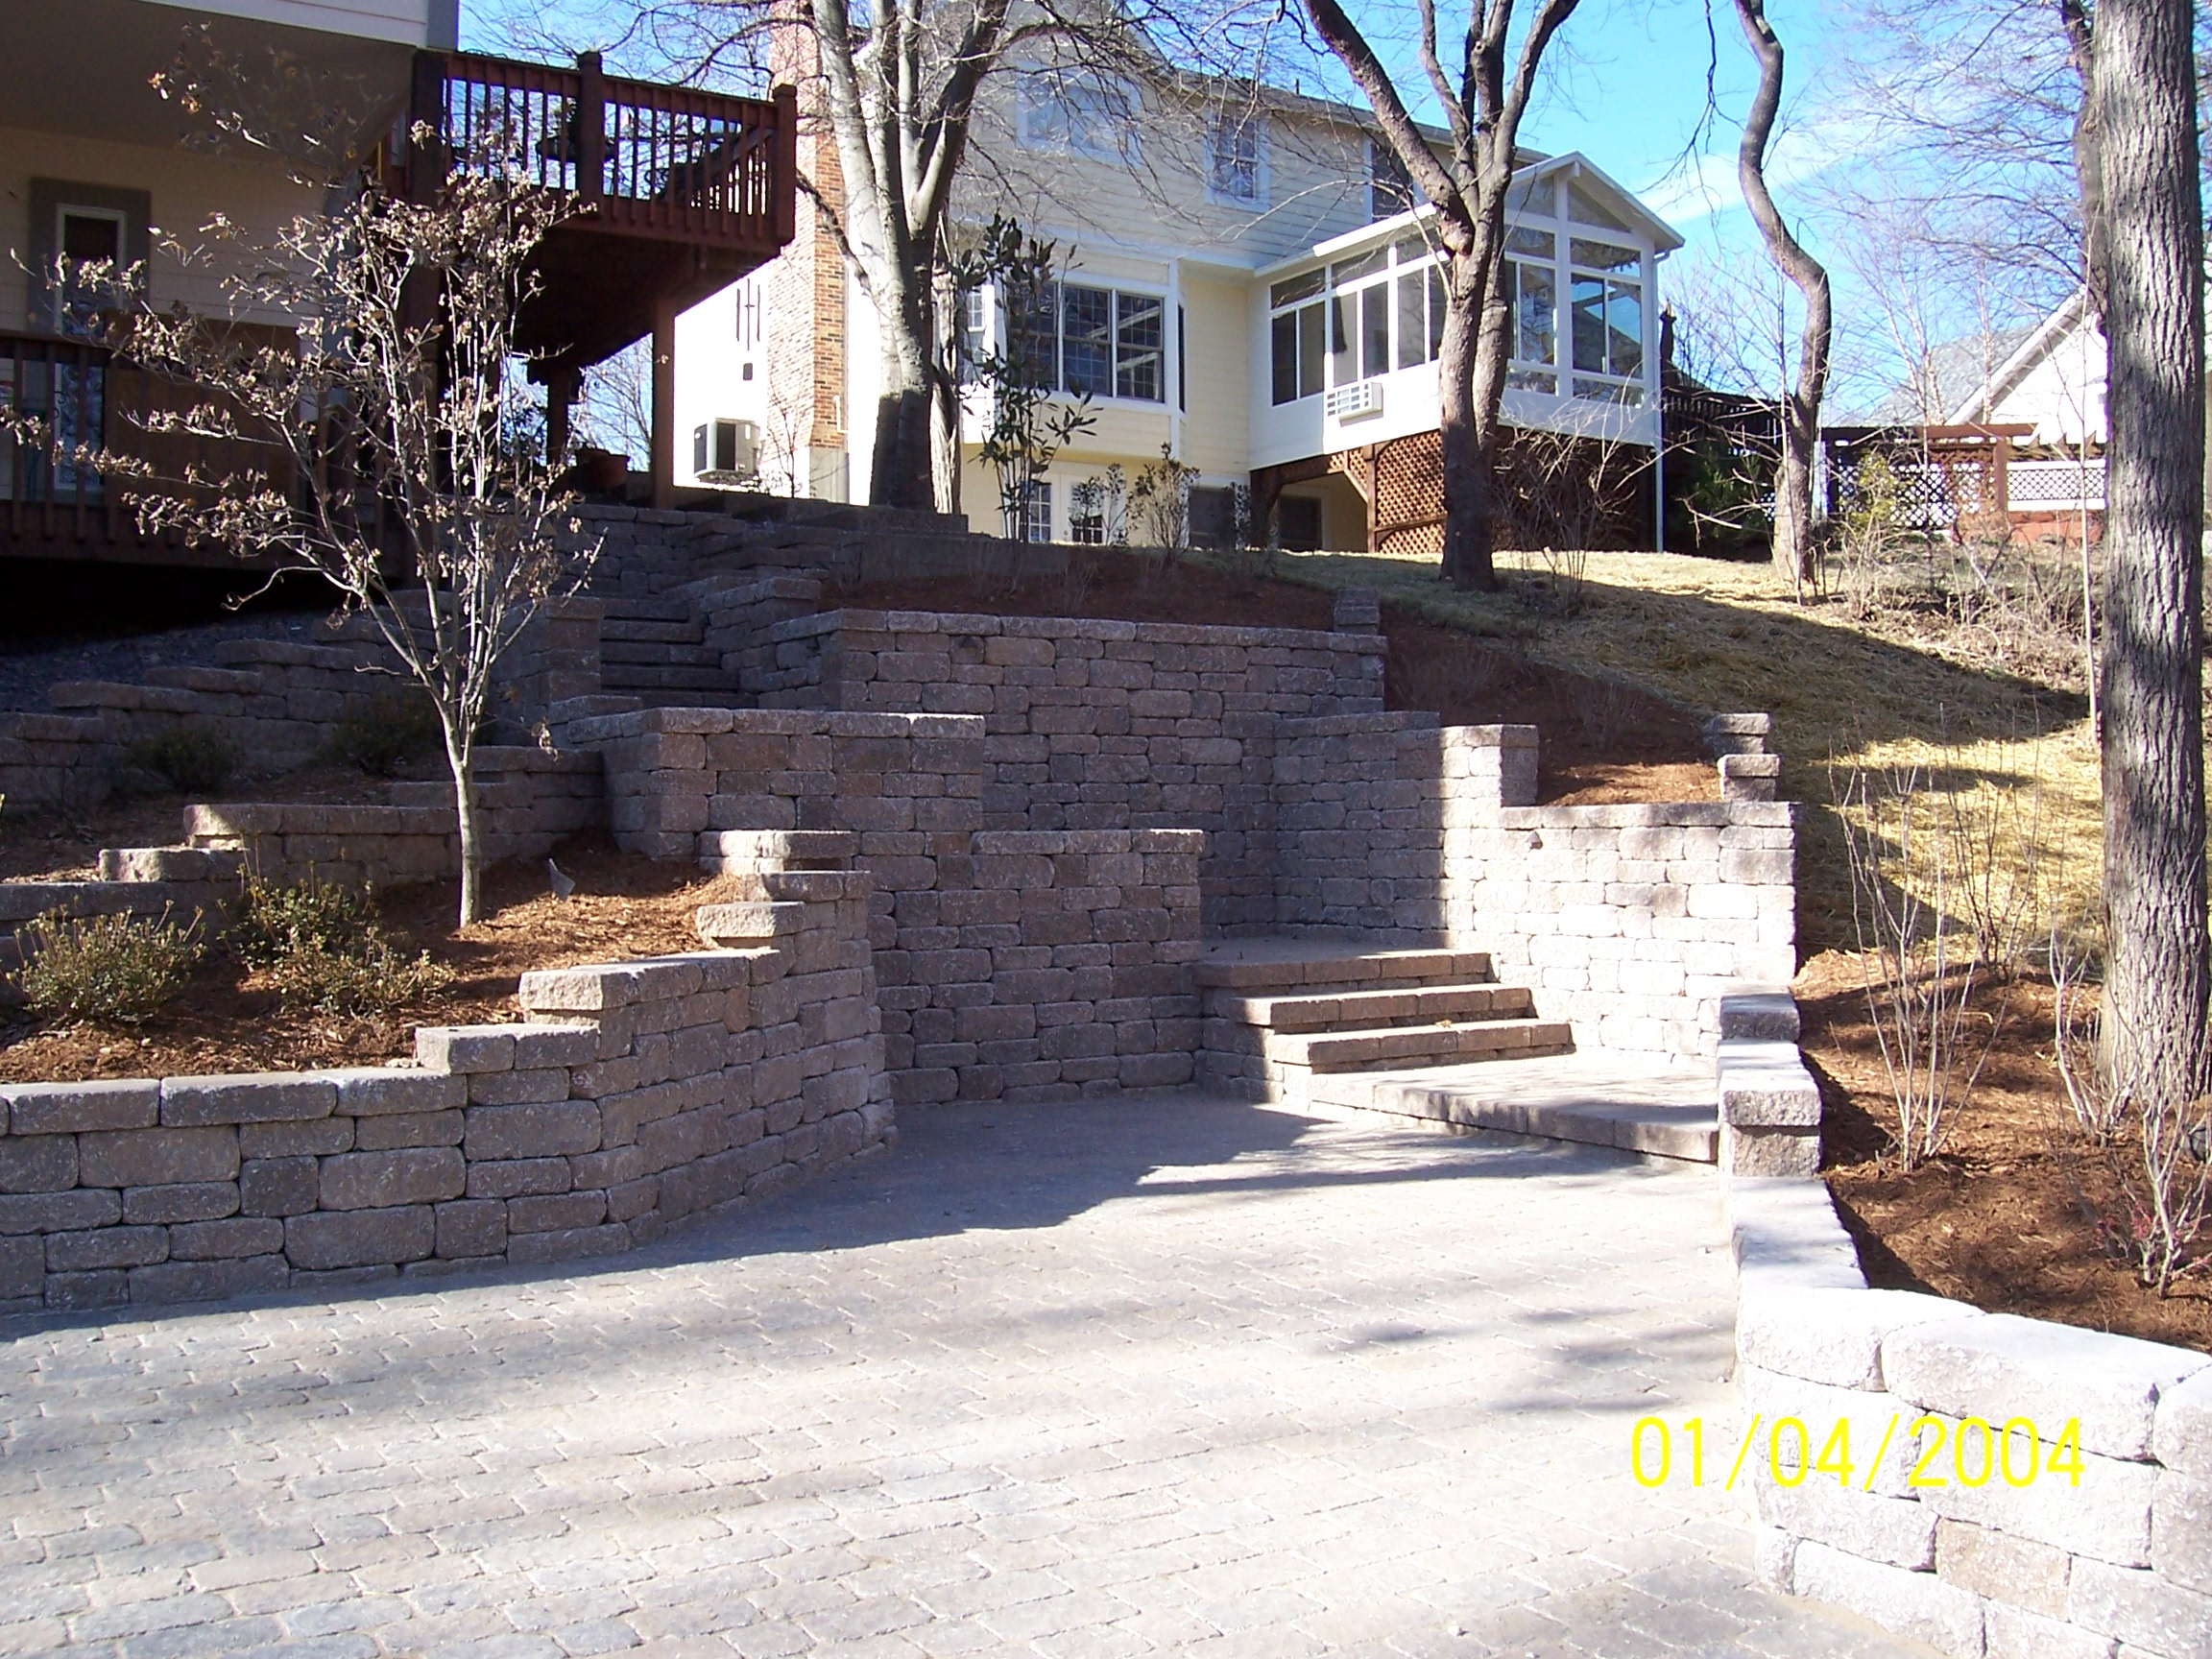 hardsacpe_steps_raised-planter-beds_versa-lok.jpg